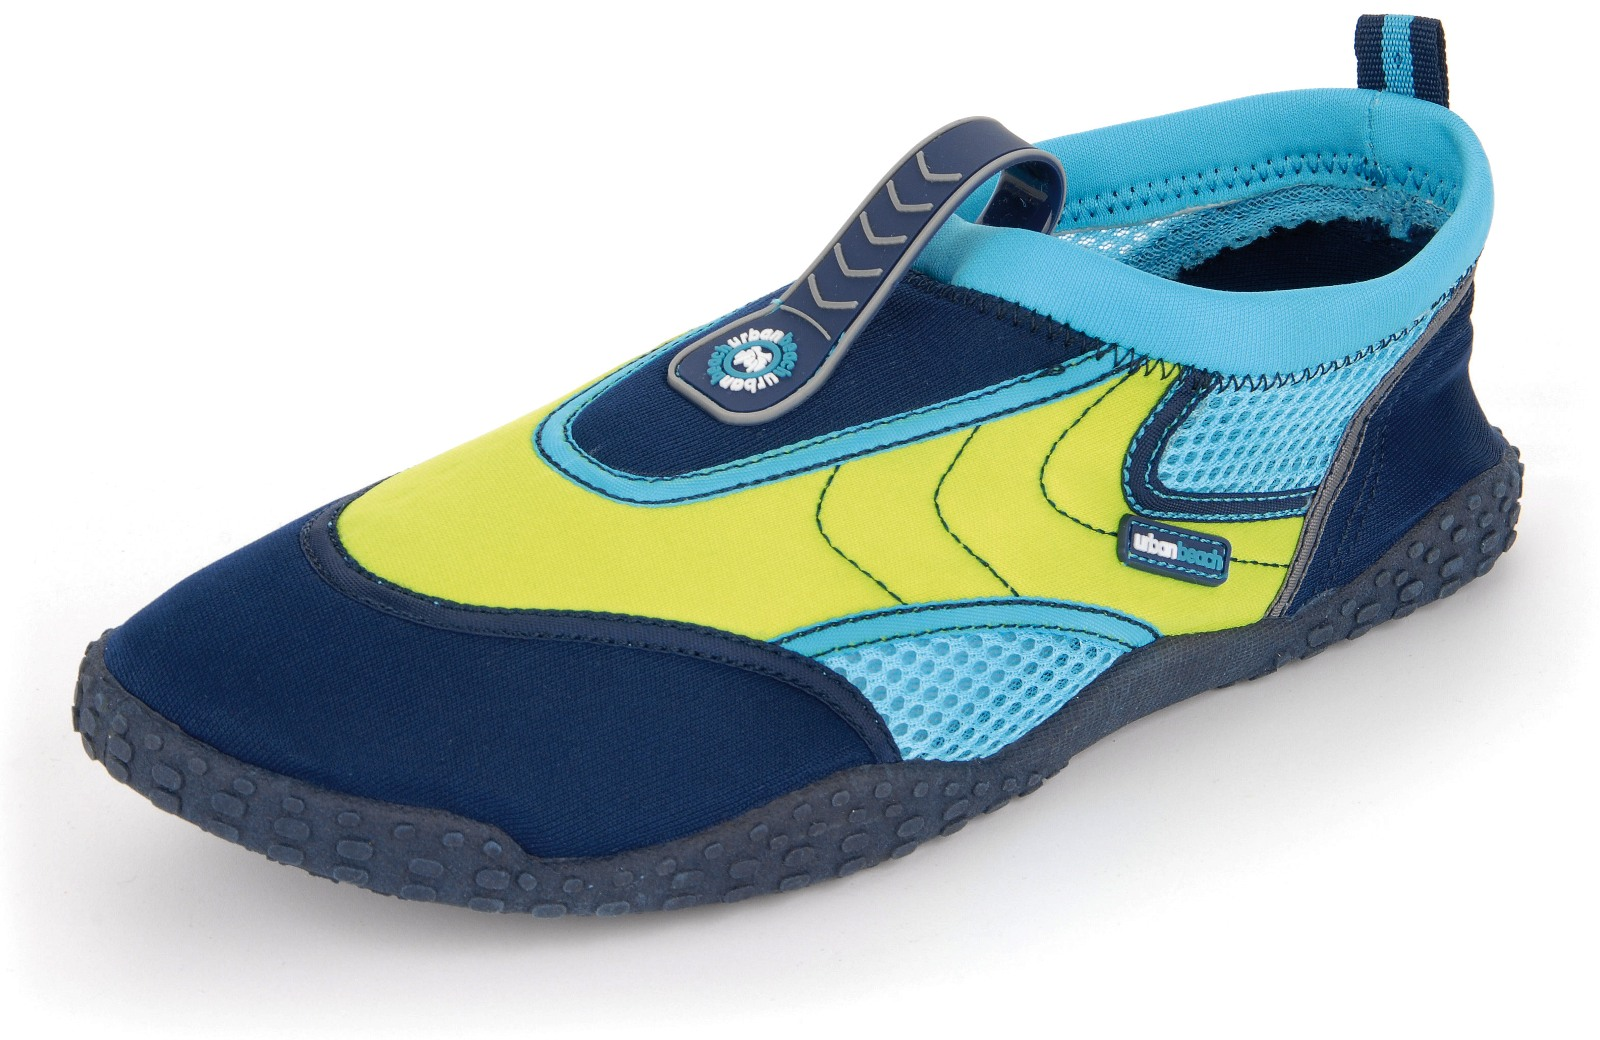 GIRLS BOYS KIDS URBAN BEACH AQUA SOCKS WETSUIT SHOES ...